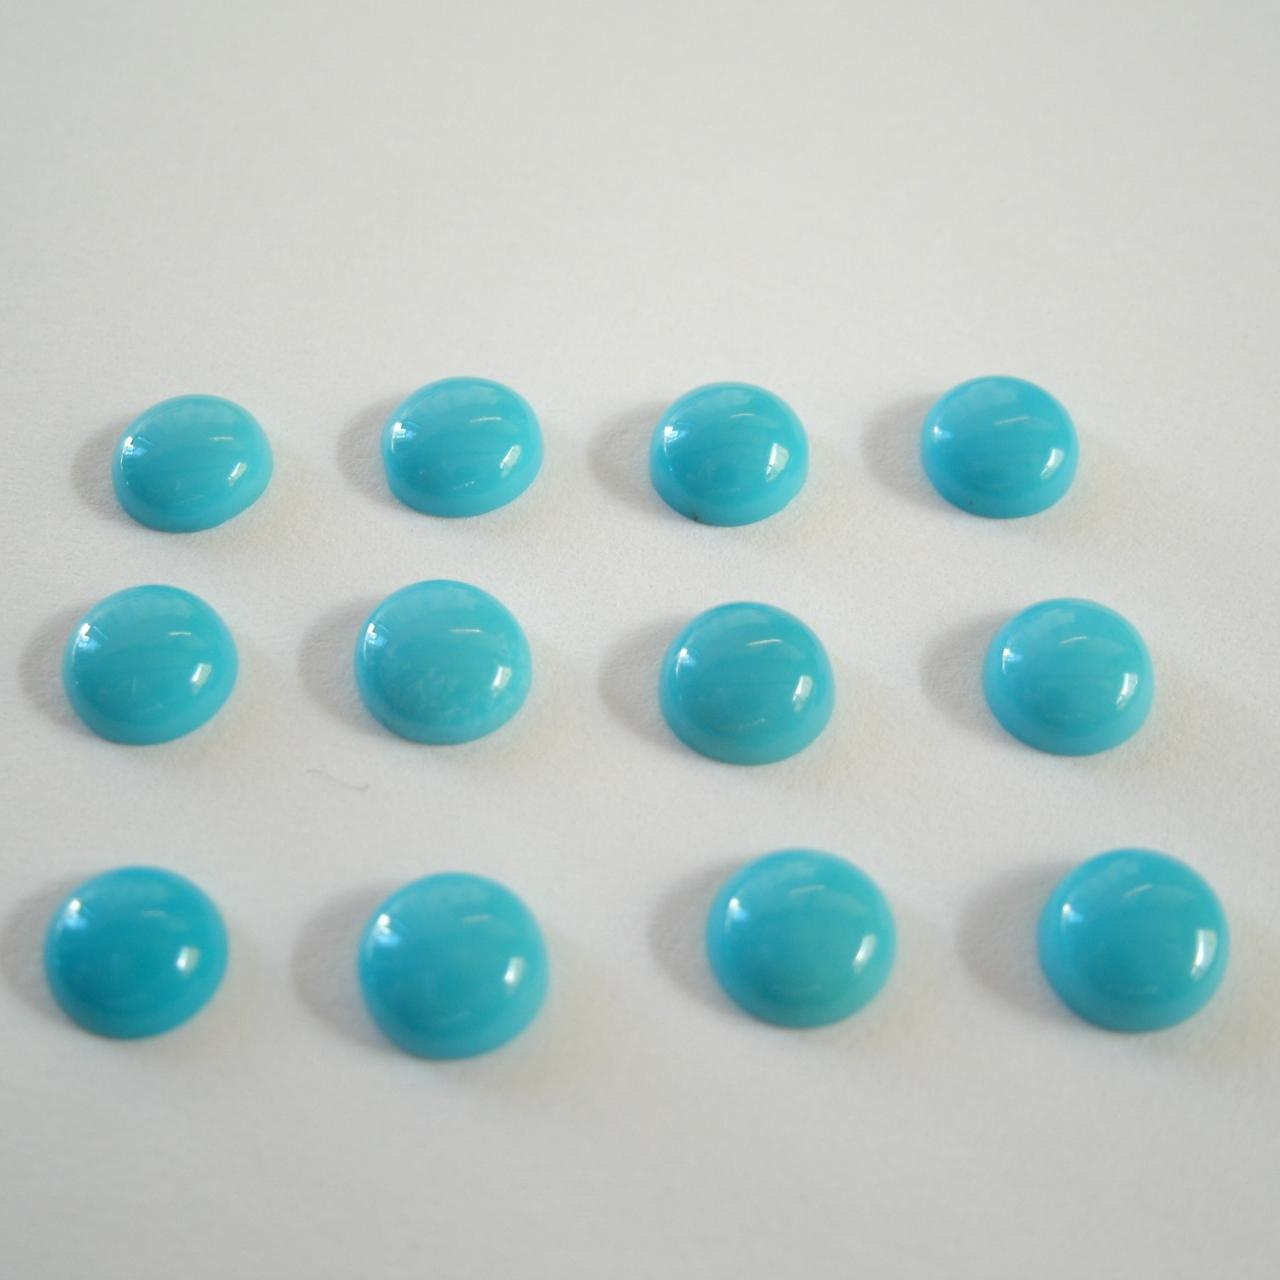 Natural Turquoise 8mm Cabochon Round 1 Pieces Lot Turquoise Color Top Quality - Natural Loose Gemstone Wholesale Lot For Sale